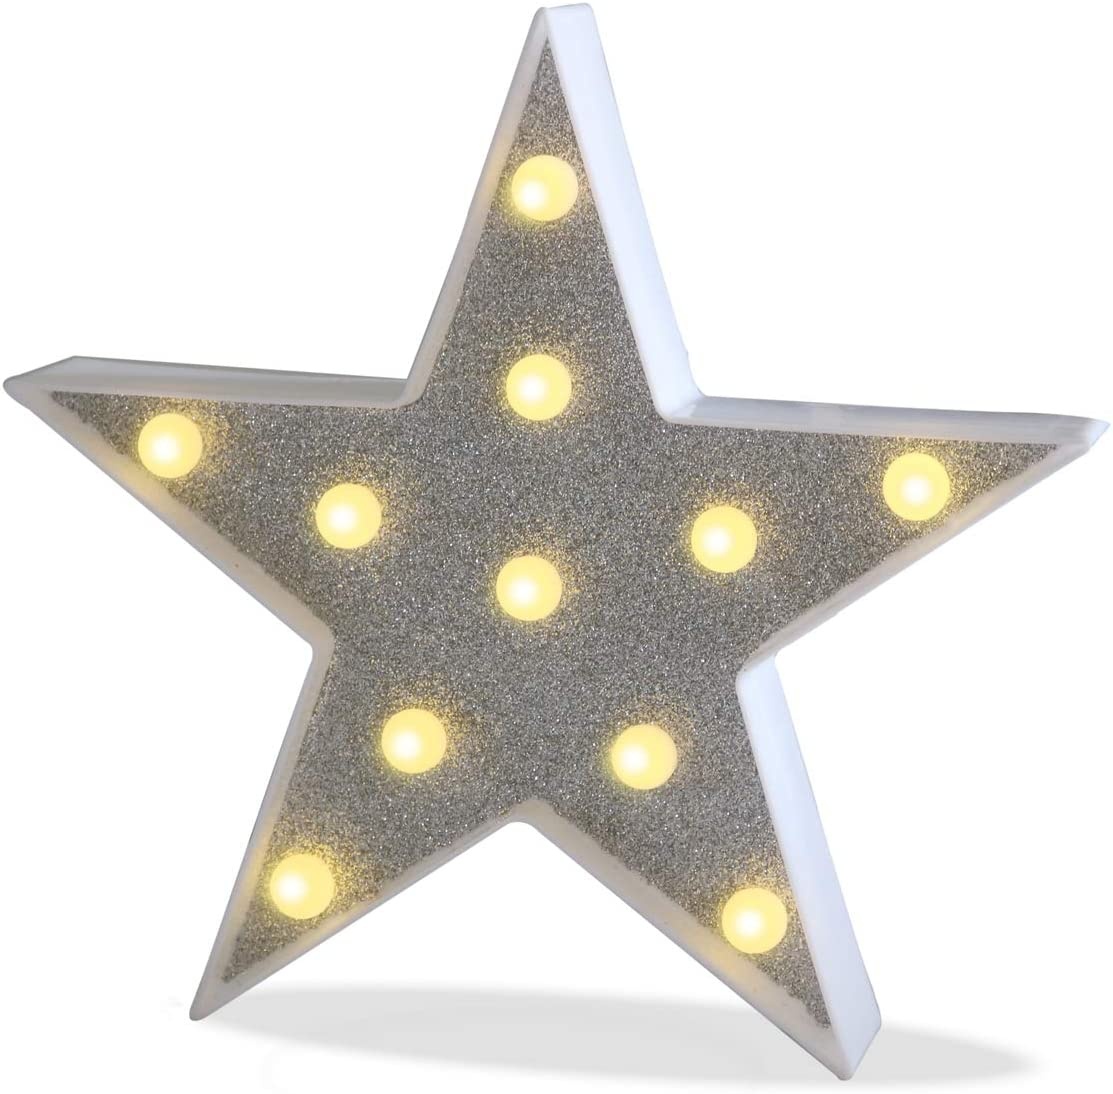 Pooqla DELICORE Marquee Light Star Shaped LED Plastic Sign-Lighted Marquee Star Sign Wall Décor Battery Operated (Giltter Shining Star)